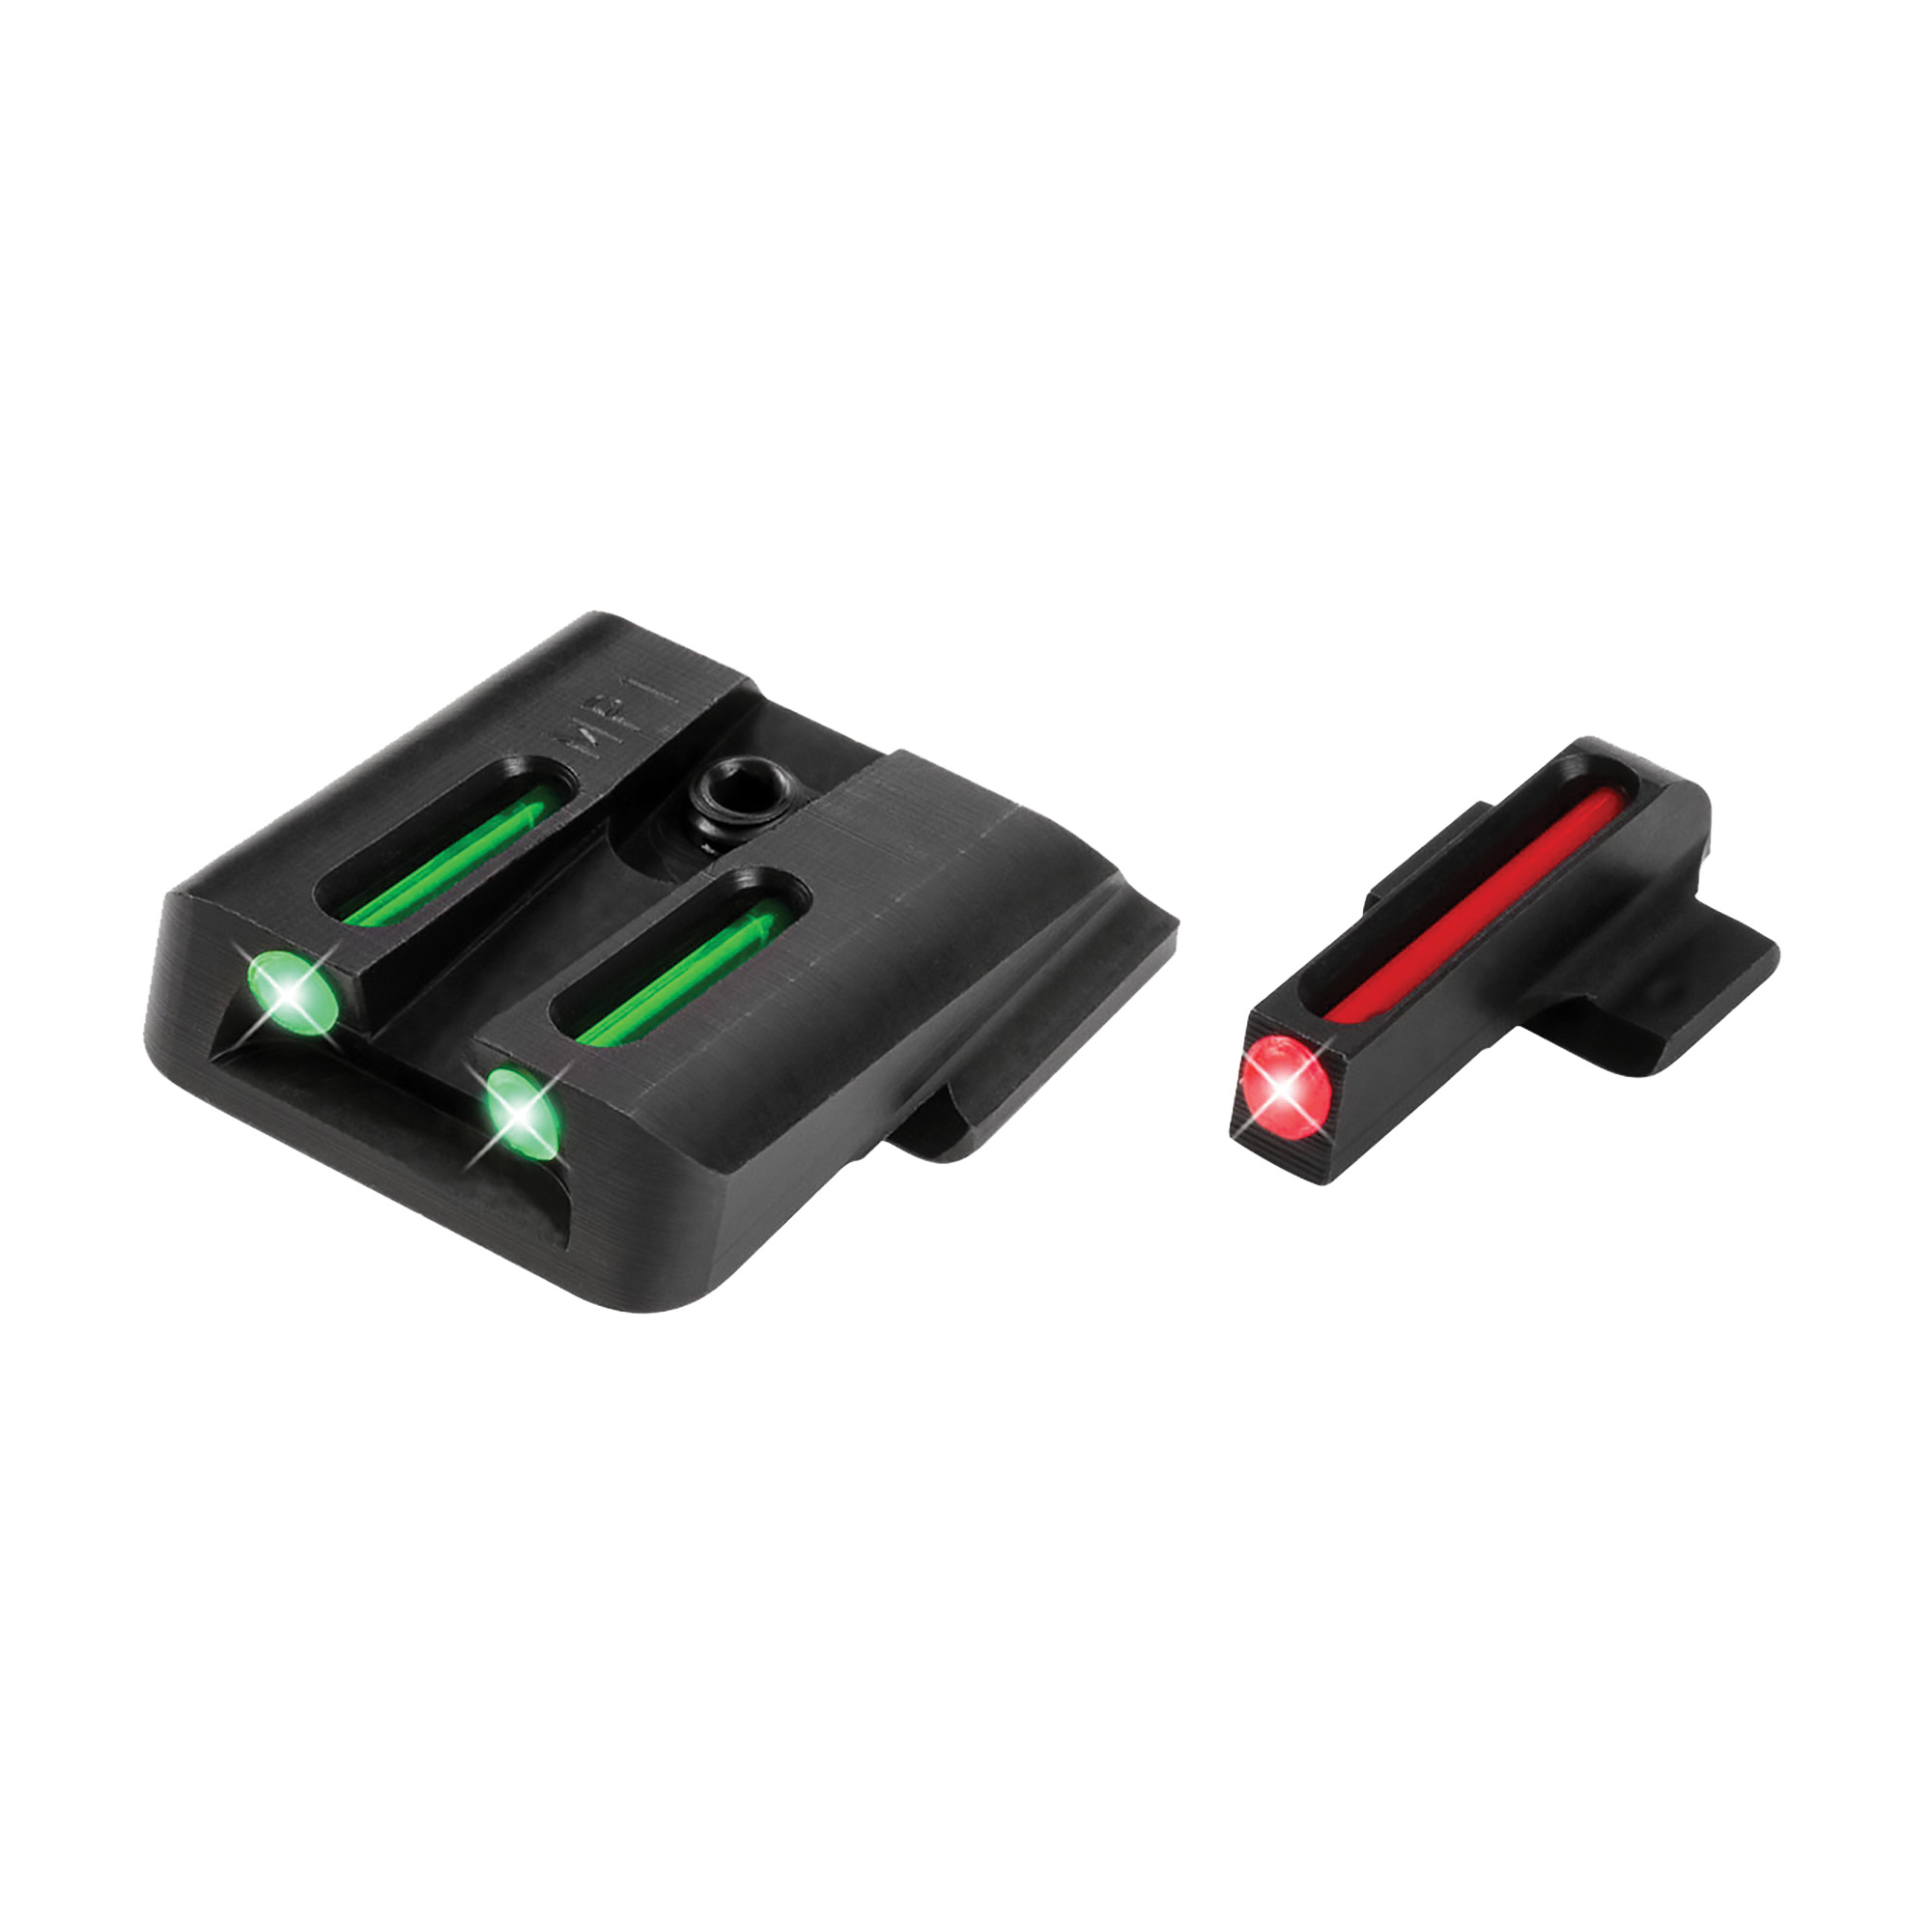 """This fiber optic handgun sight is meant for fast target acquisition and to be easily seen. Made out of CNC-machined steel the sight has contrasting red front and green rear fiber optics. The concealed fiber cannot be seen by the target"""" only the user. The sights fit standard holsters thanks to a snag resistant design."""